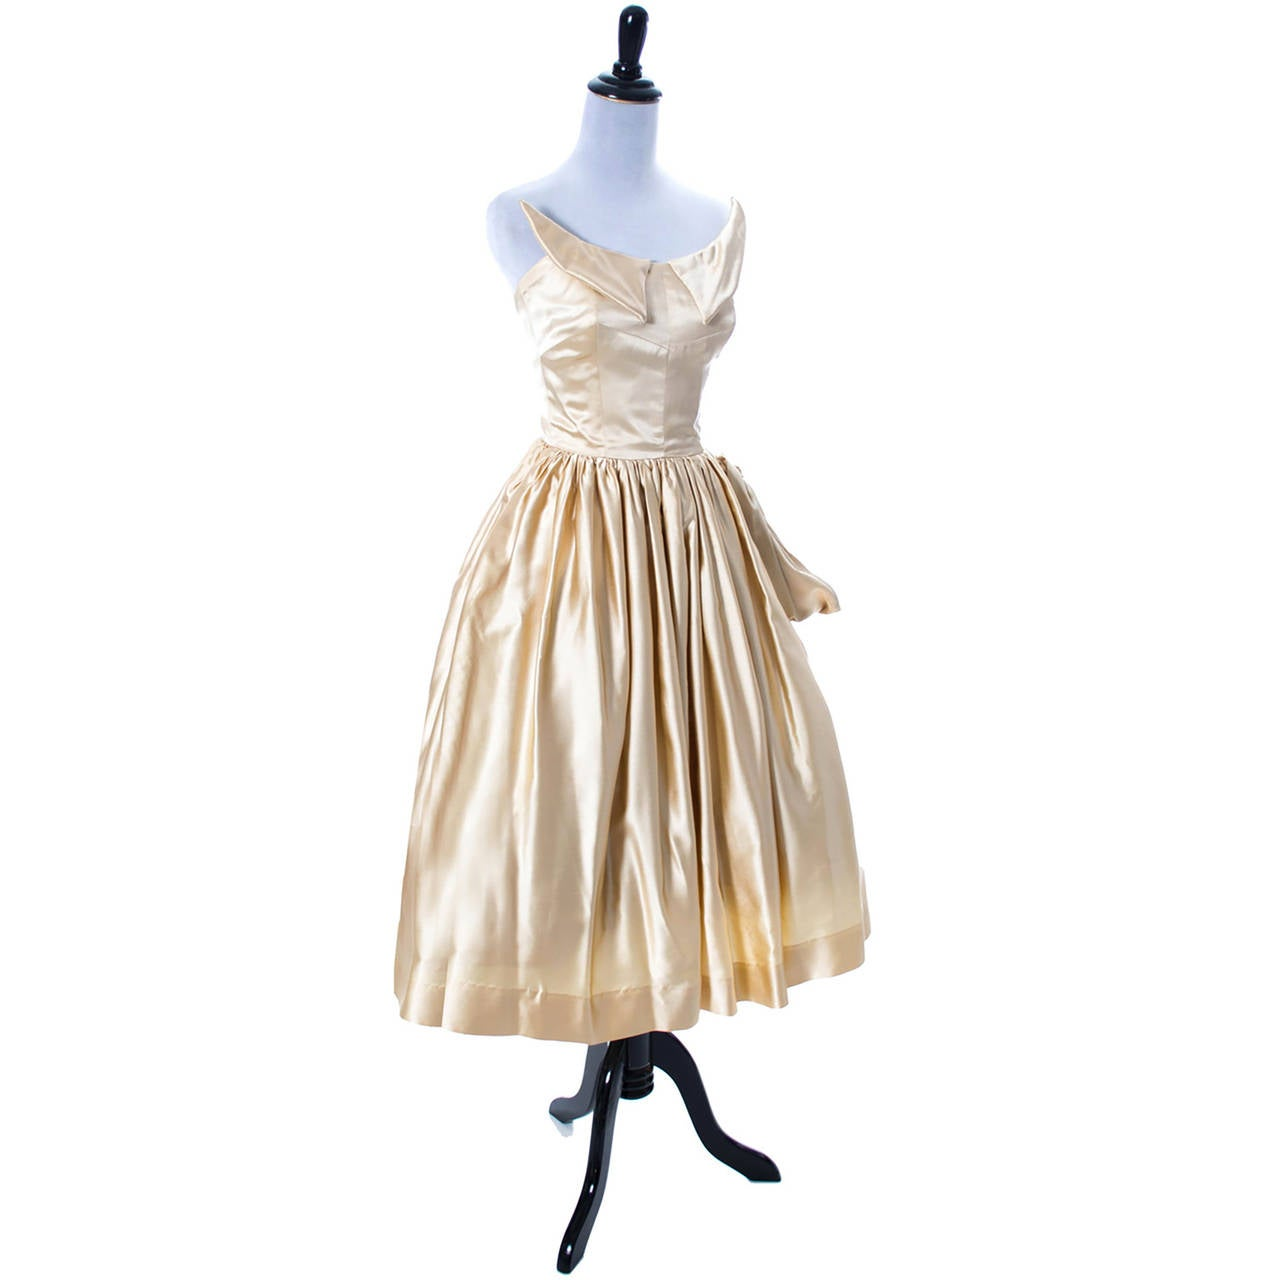 1950s Vintage Dress Champagne Satin Winged Bust Wedding Peg Powers Original 6